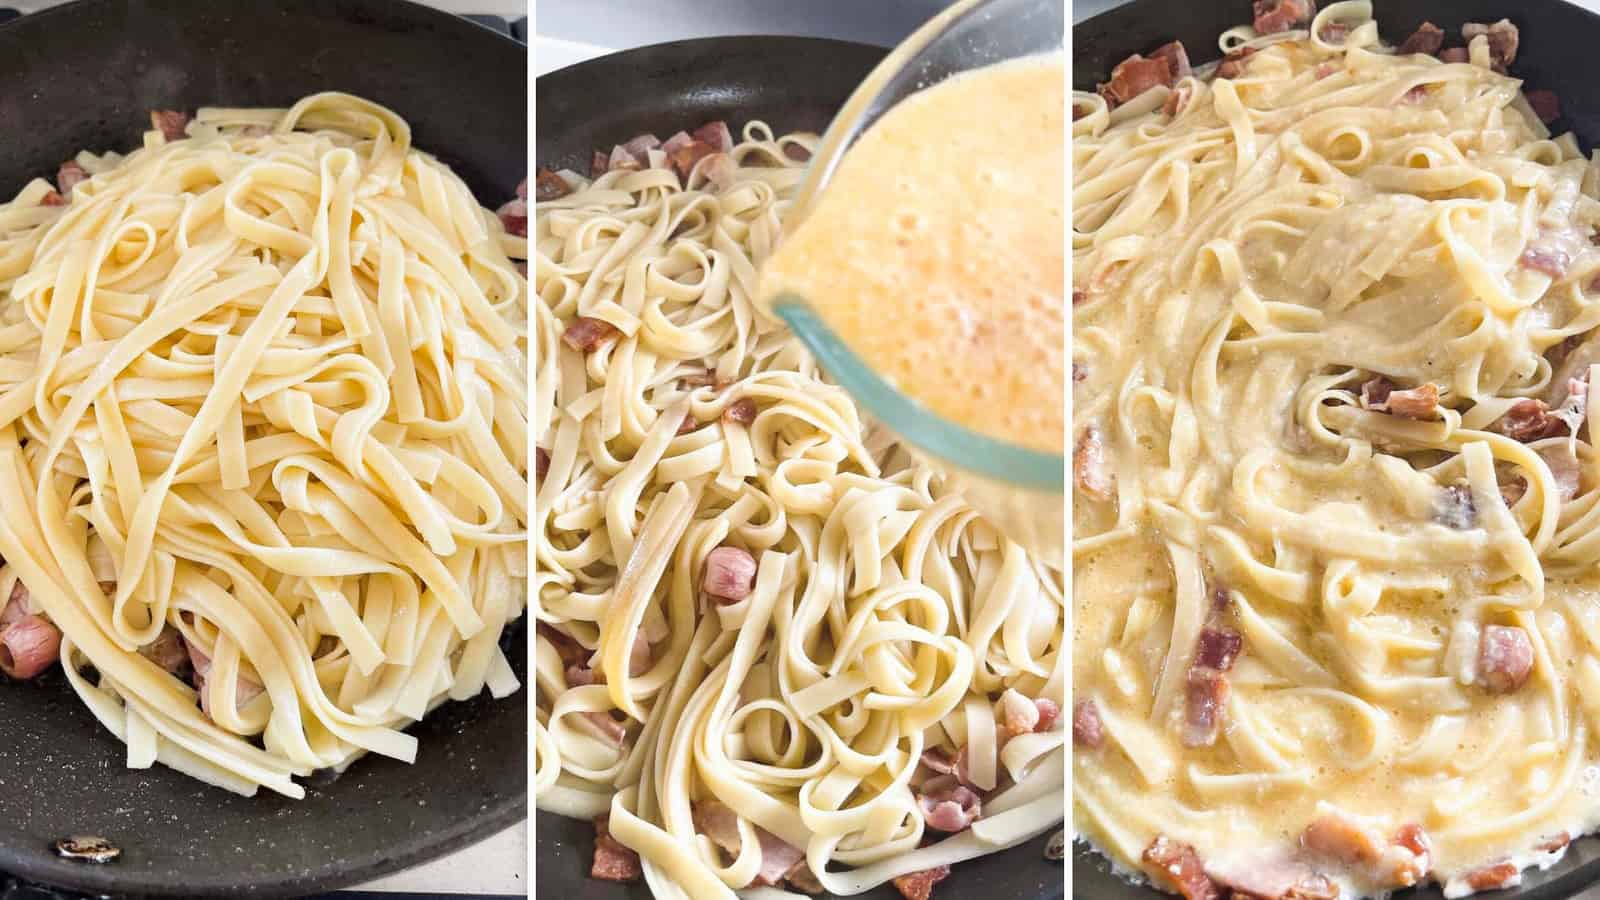 Step by step photos showing how to make fettuccine carbonara.